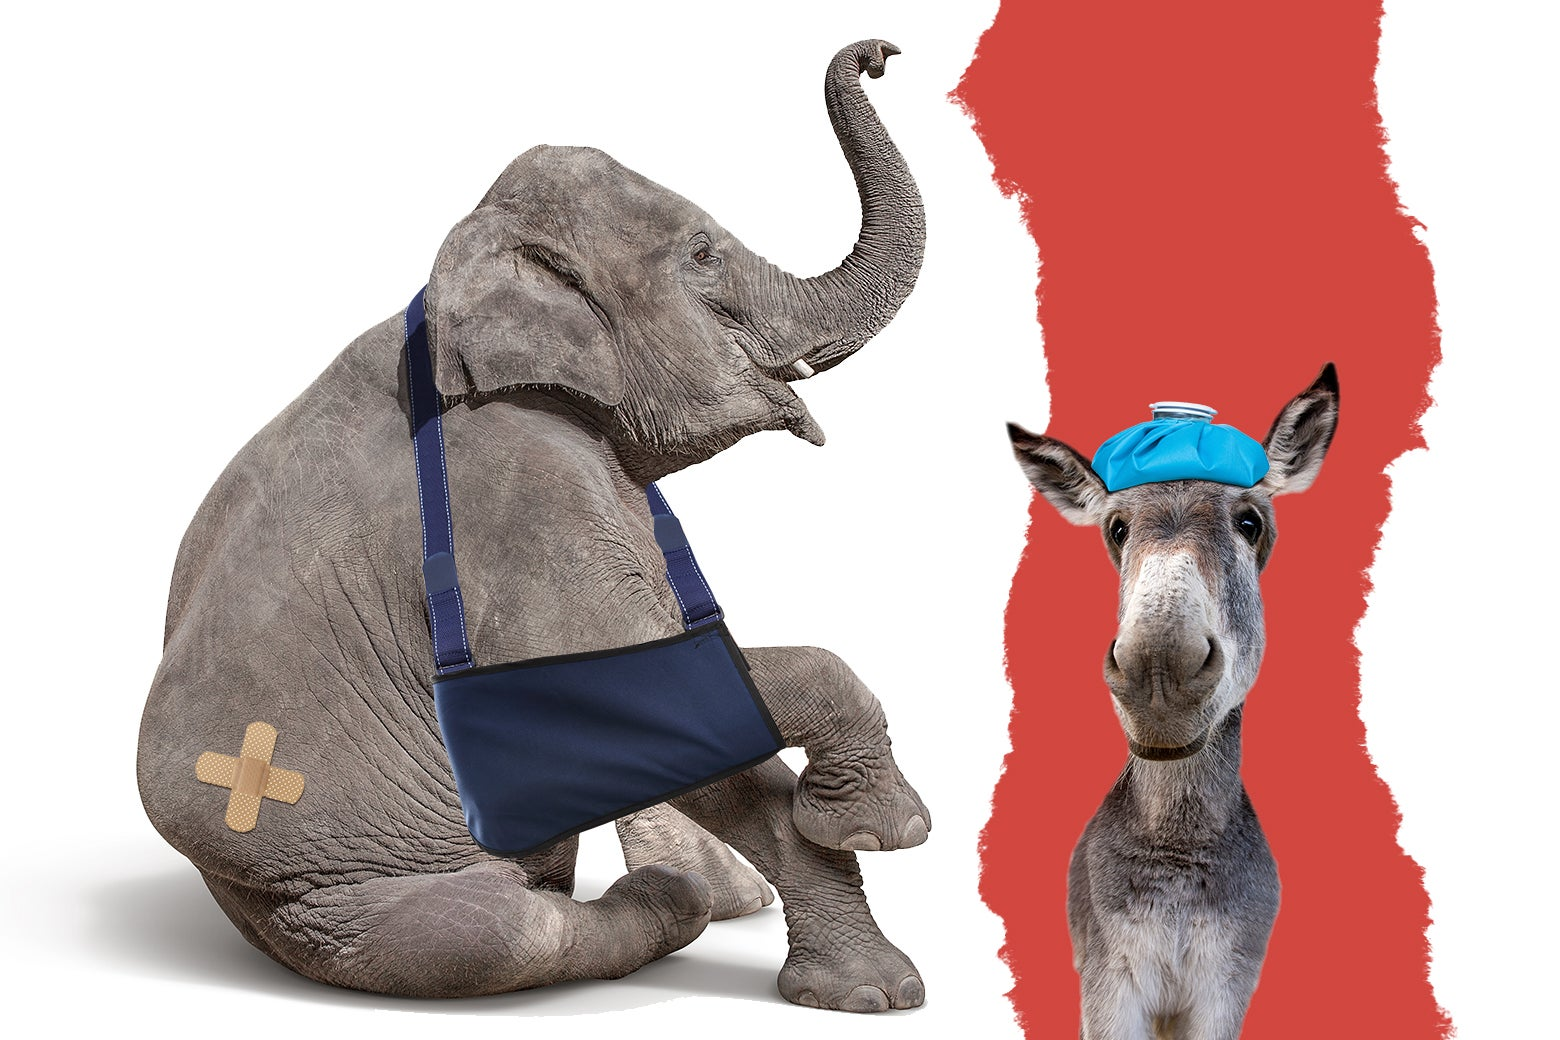 An elephant with its front leg in a sling and bandages on its bottom. A donkey with an ice pack on its head.